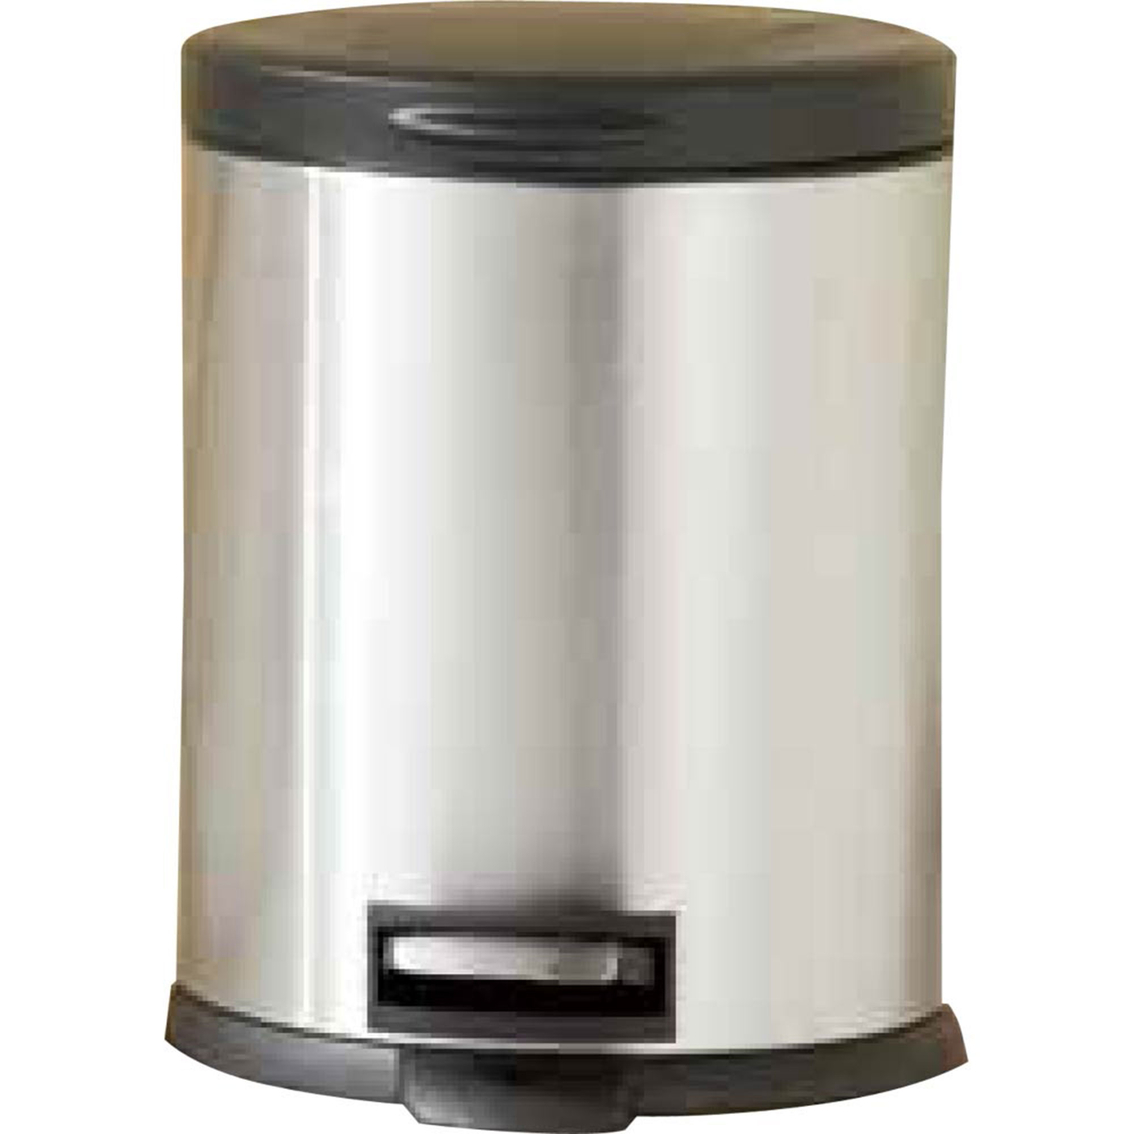 Simply Perfect Stainless Steel Trash Can Trash Cans